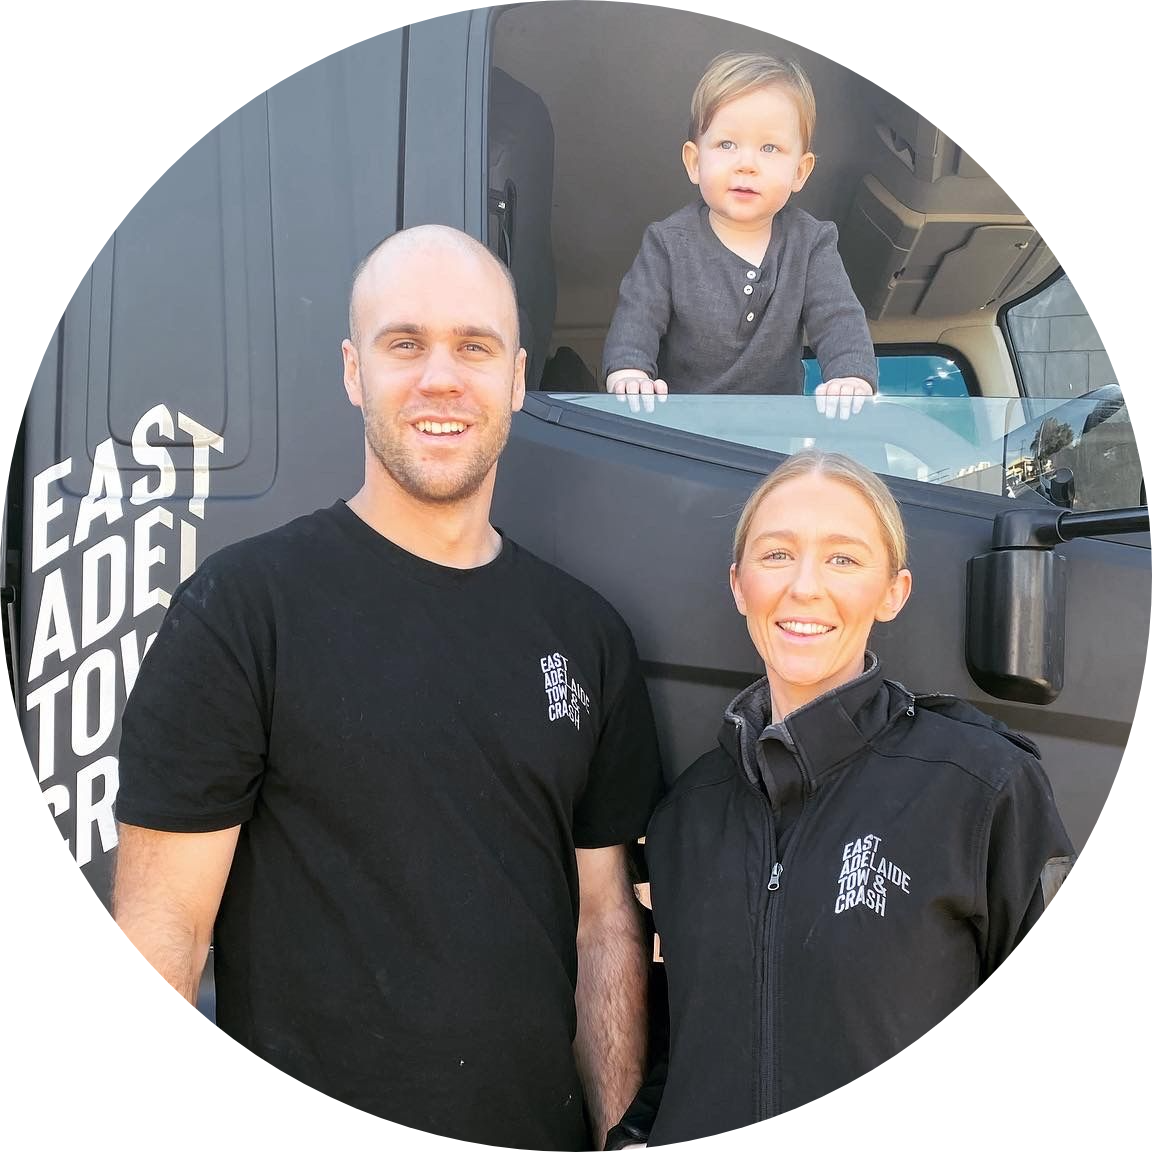 East Adelaide Tow and Crash Family